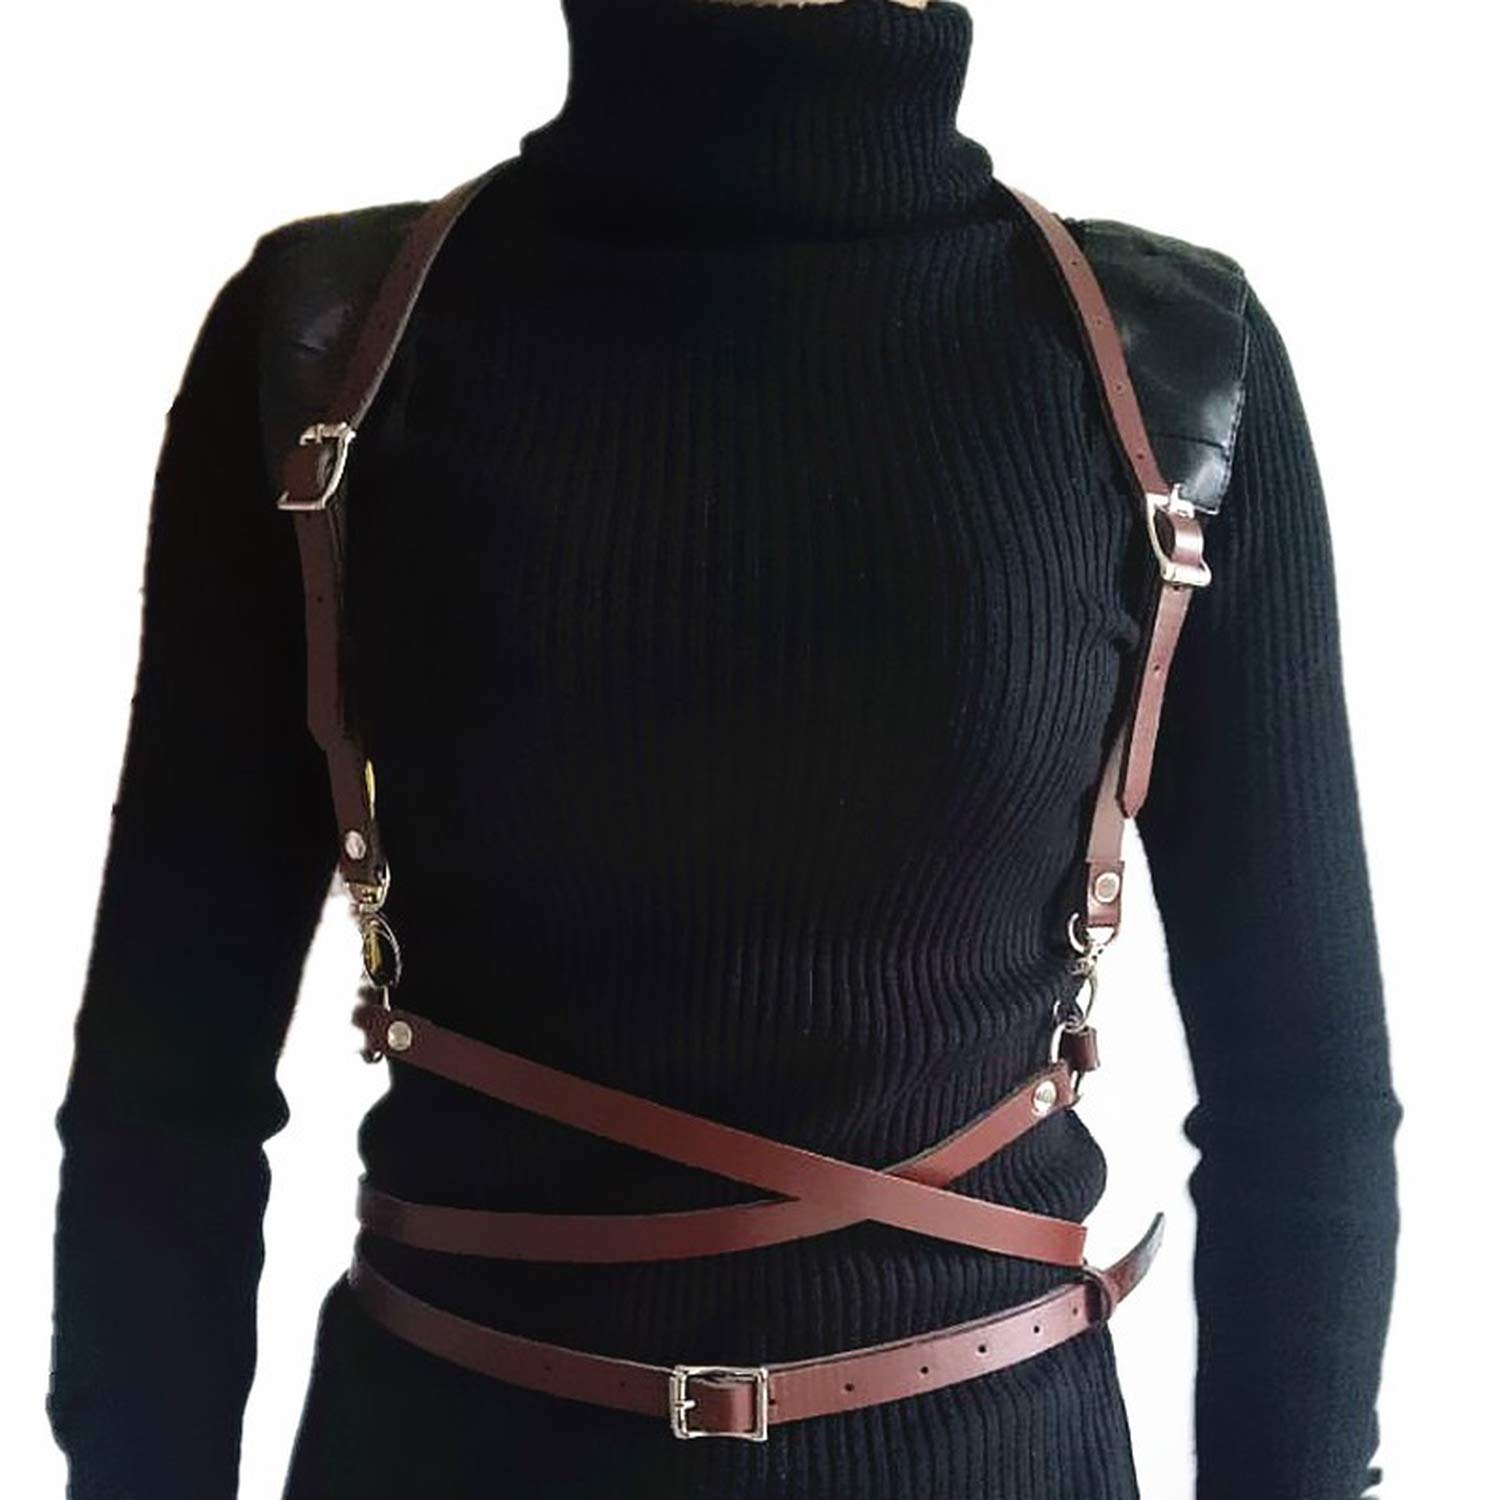 Harness Belts Men Leather Suspenders with Rounds Waits Belt Woman Body Jewelries